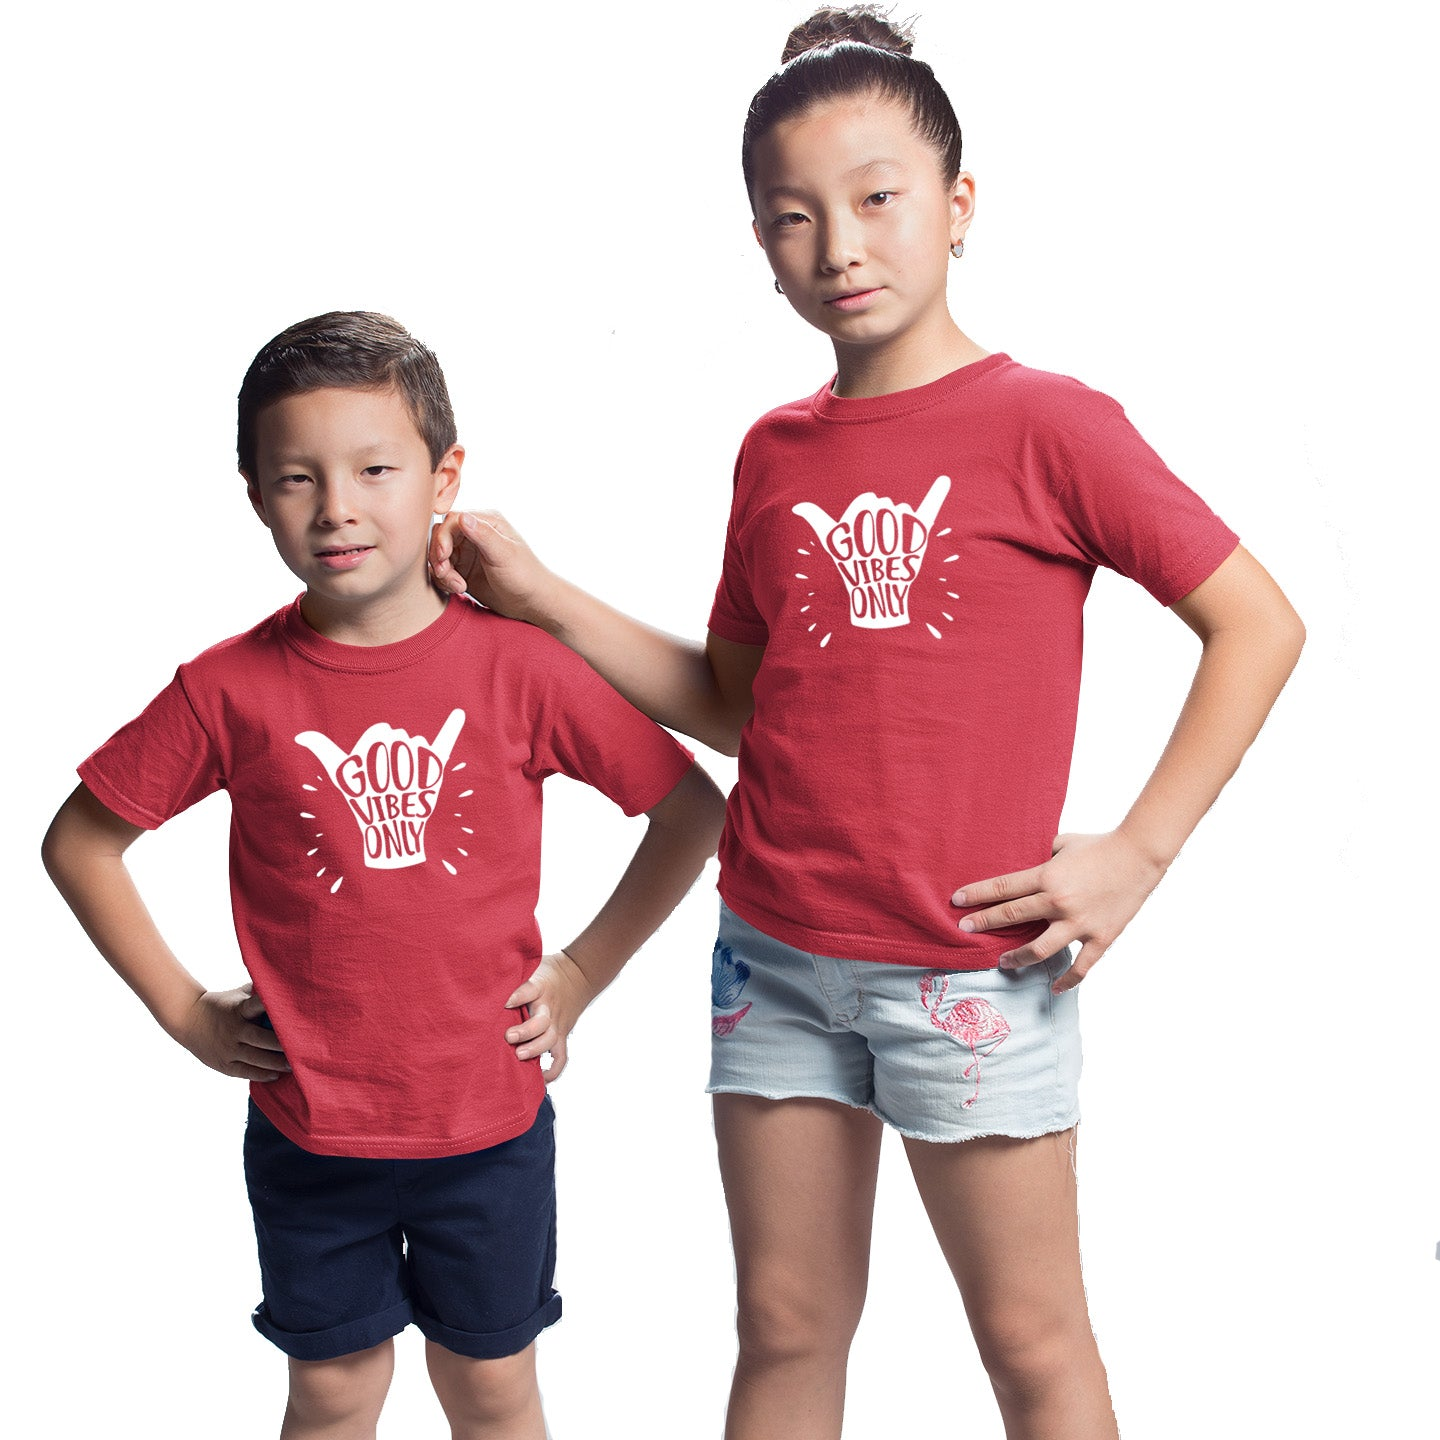 Sprinklecart Set of Good Vibes Only Printed T Shirt | Combo of 2 Red Cotton T Shirts for Siblings